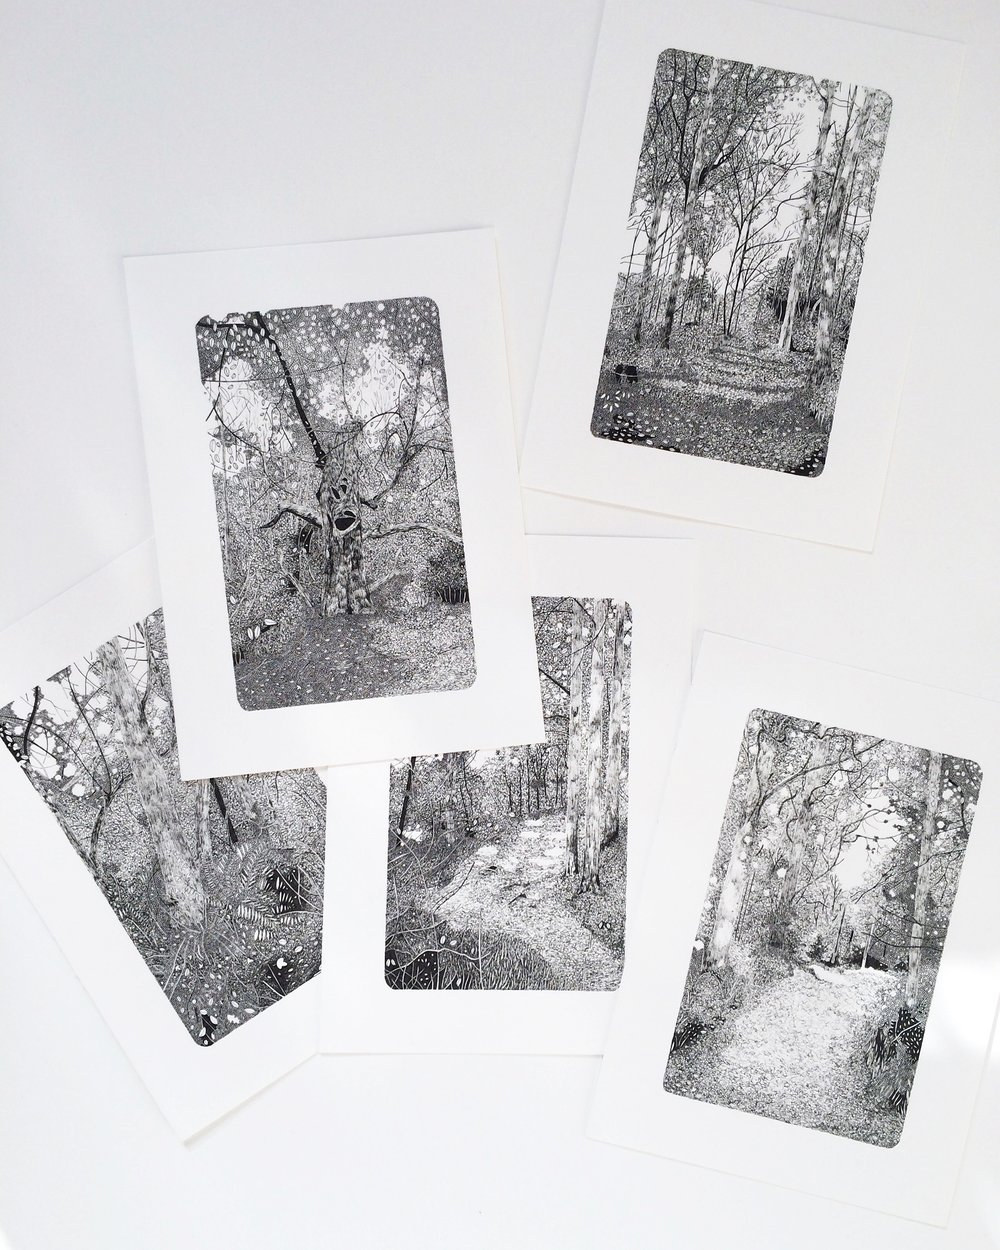 Five Drawings From Claire Leach's 'Woodland Studies' Series Inspired By The Forest Of Dean